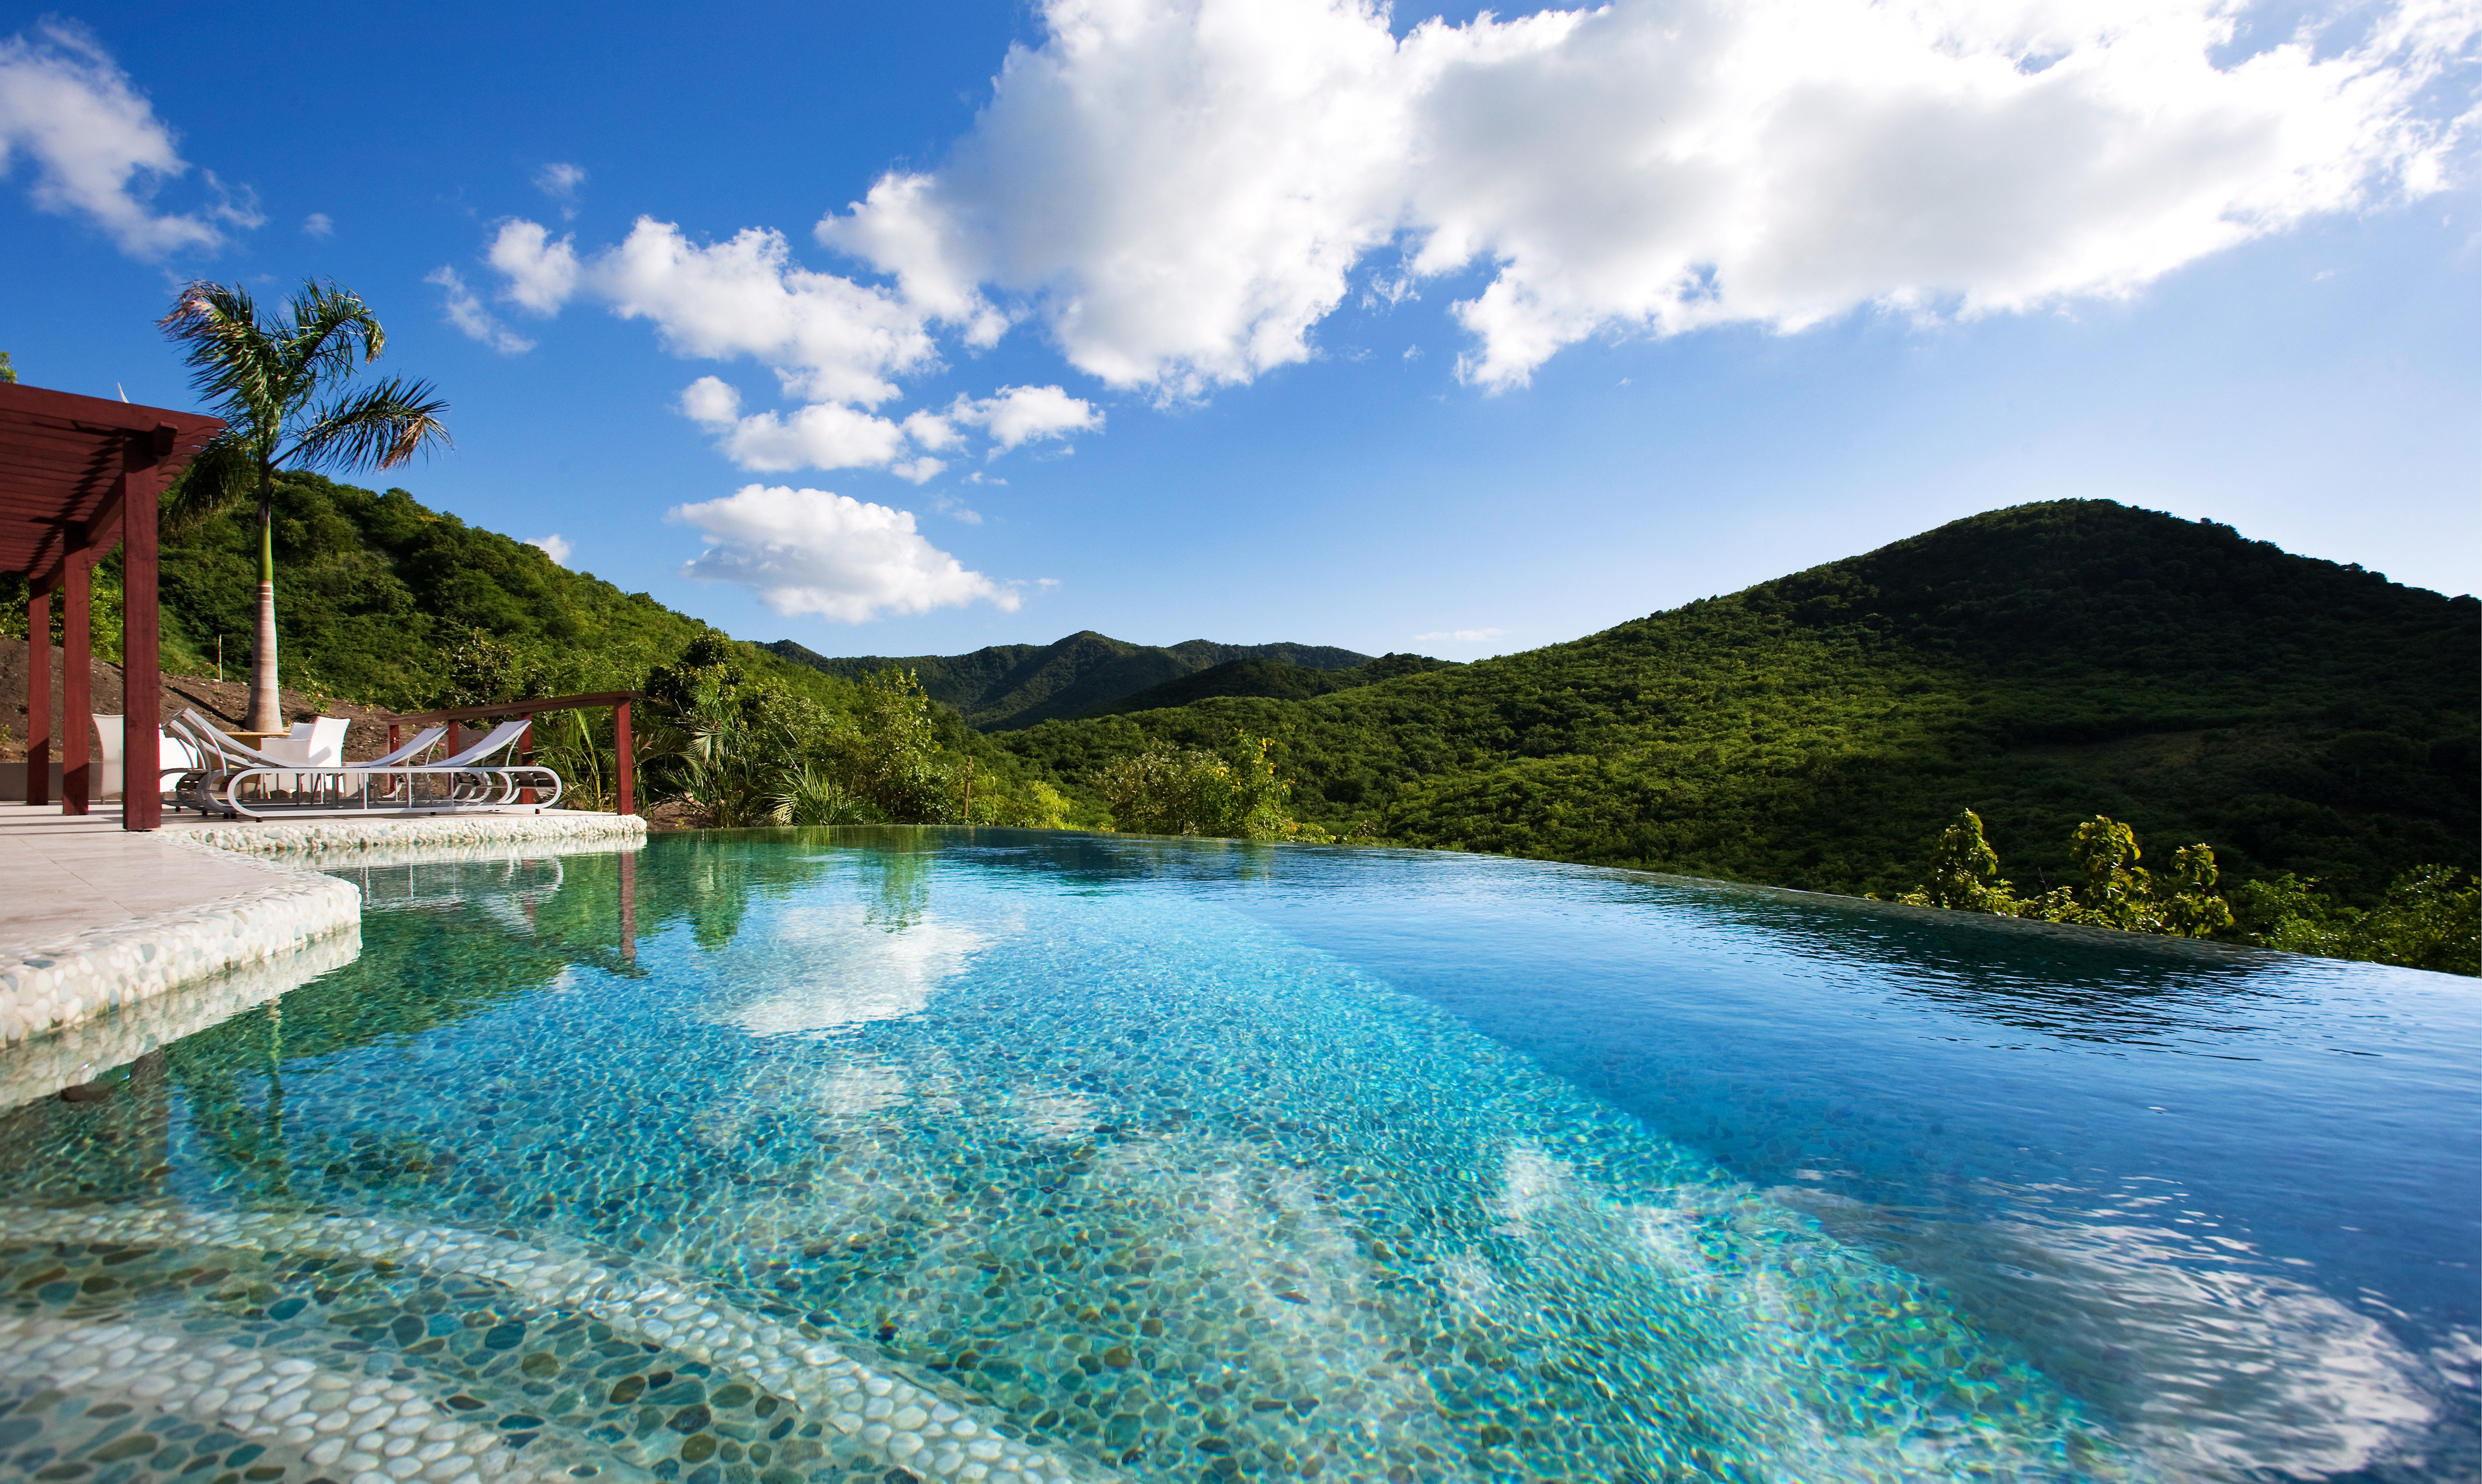 Hotels Trip Ideas sky water mountain Nature Sea Lake Lagoon Coast reservoir swimming pool surrounded day Island